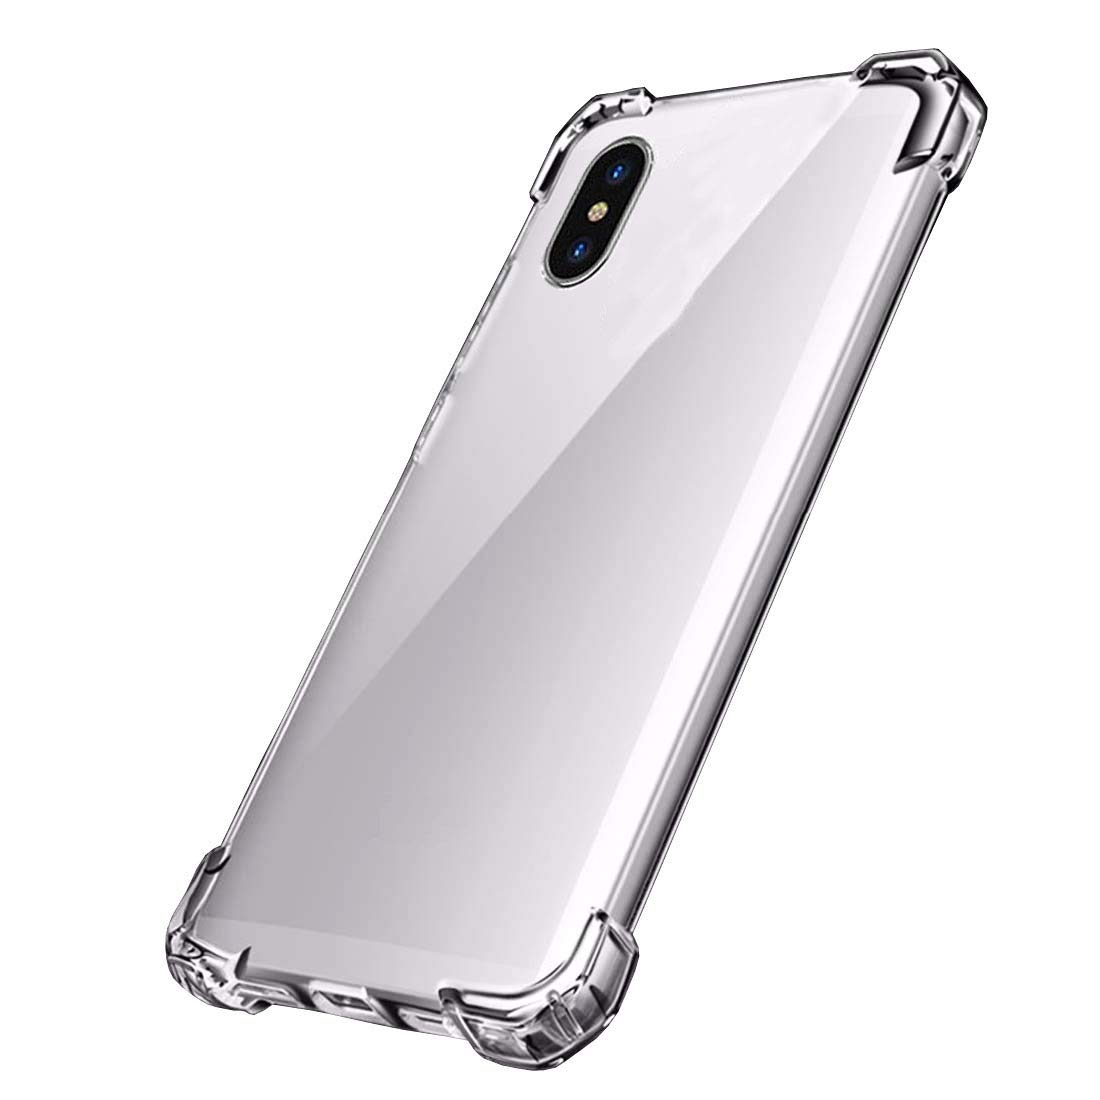 designer fashion 9ed5d d4919 Tverghvad Premium Crystal Clear iPhone Xs Max Case, [Anti-Shock] Slim  Flexible TPU Bumper Hard Shell Protective Cover Case Compatible with iPhone  Xs ...